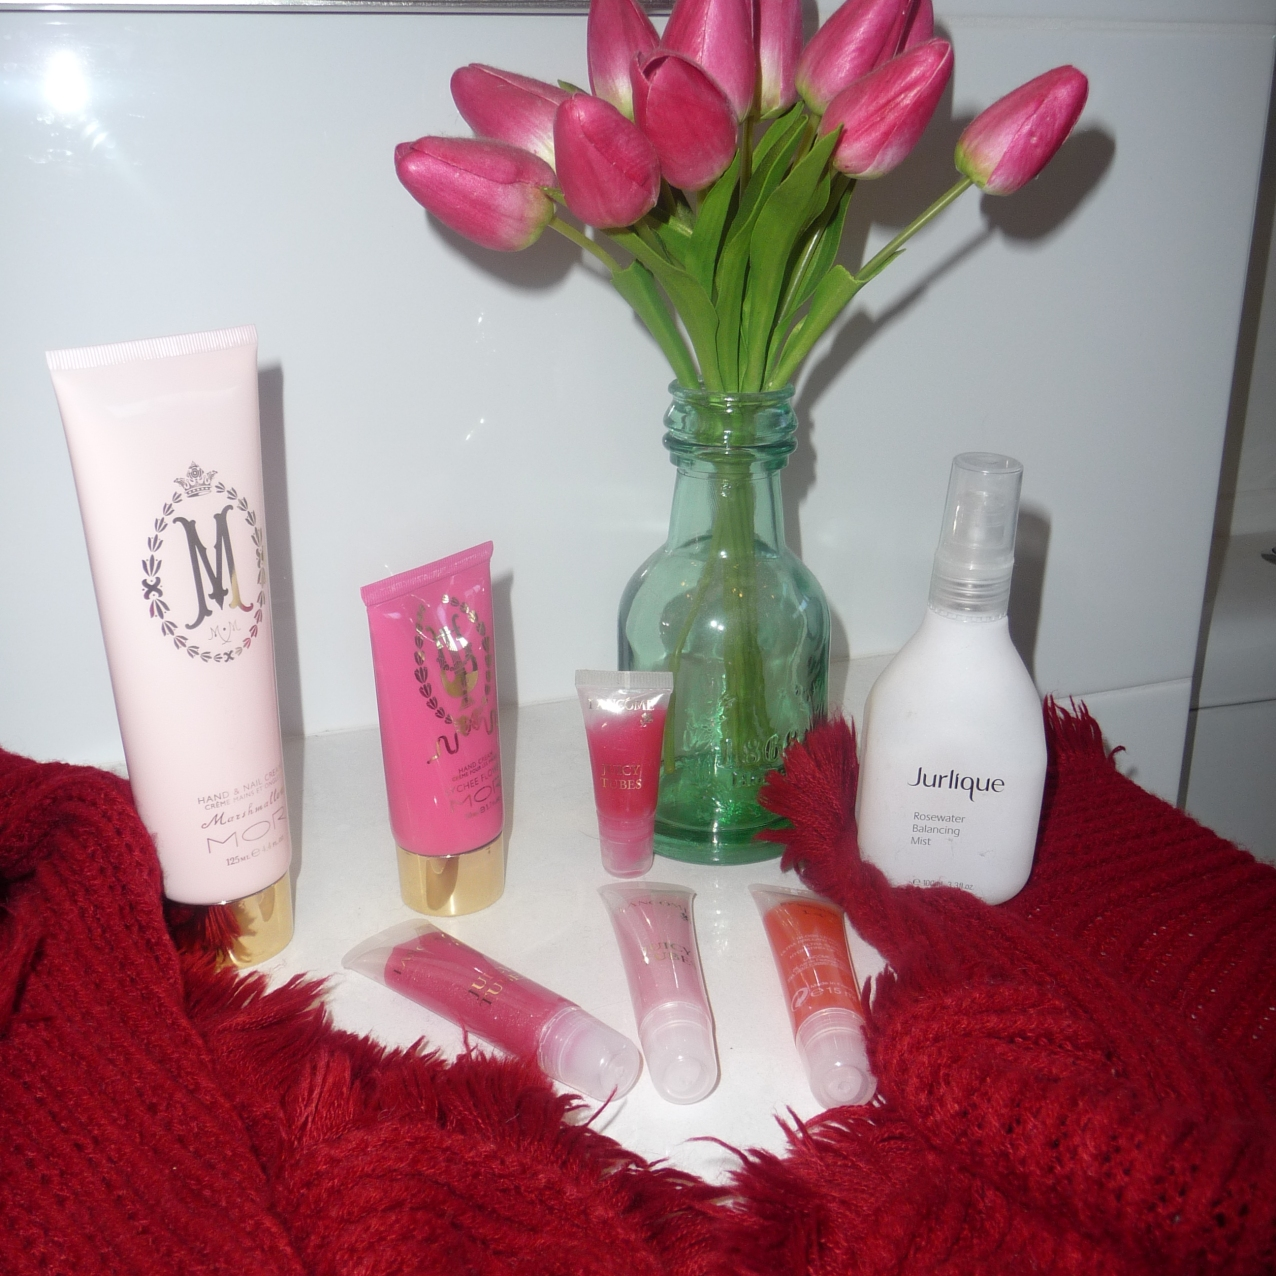 Travel essentials including red pashmina/scarf